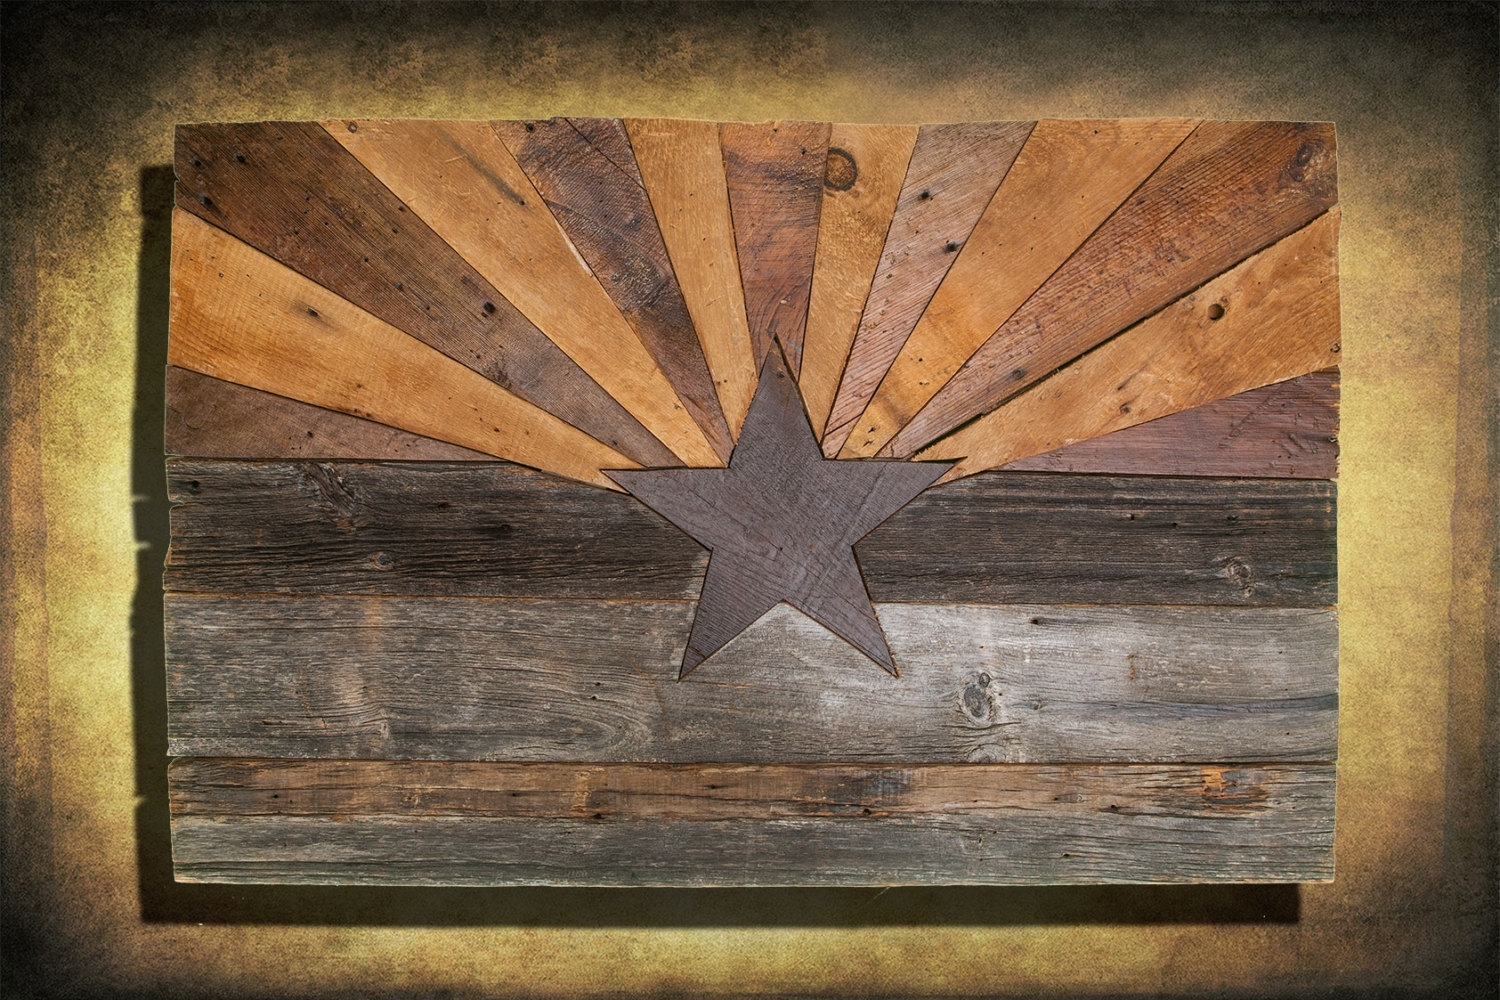 Barn Wood Arizona Flag, Handmade, Distressed Natural Wood, Vintage For Best And Newest Arizona Wall Art (View 2 of 20)